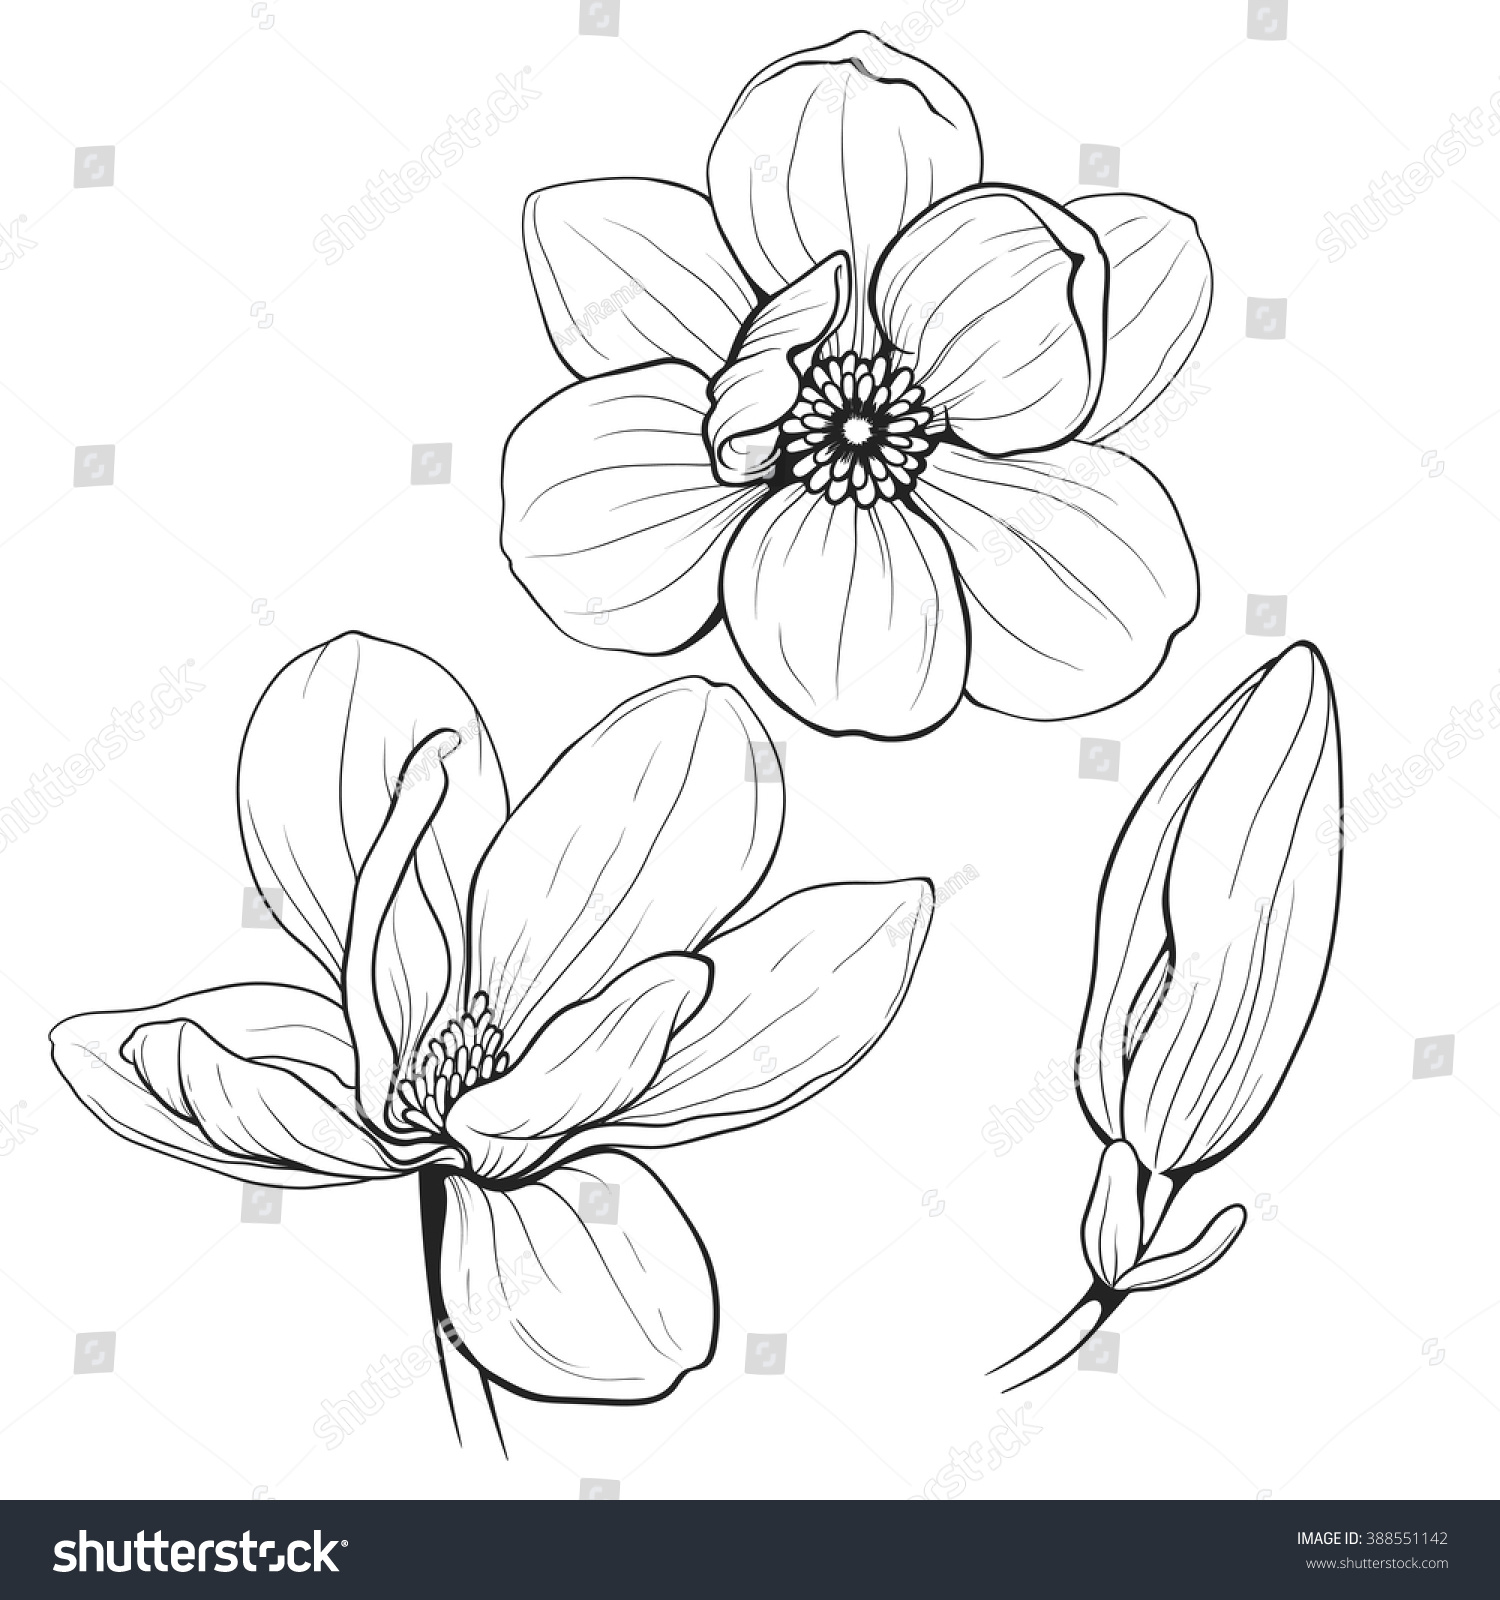 Magnolia Flower Line Drawing : Black white line illustration magnolia flowers stock